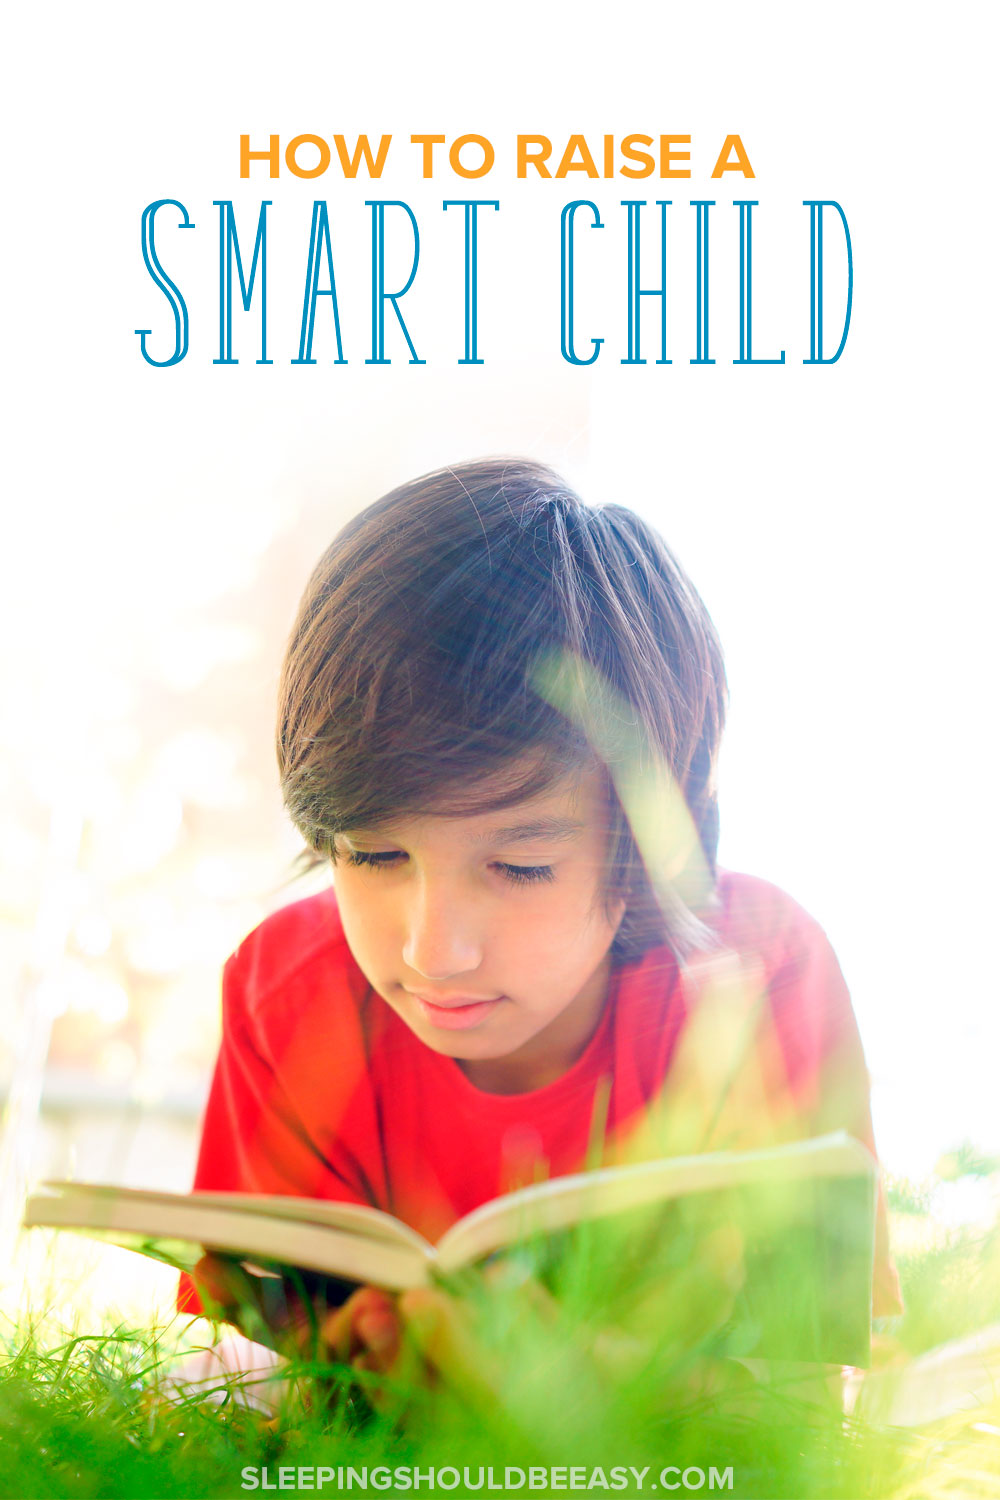 A boy reading: How to raise a smart child